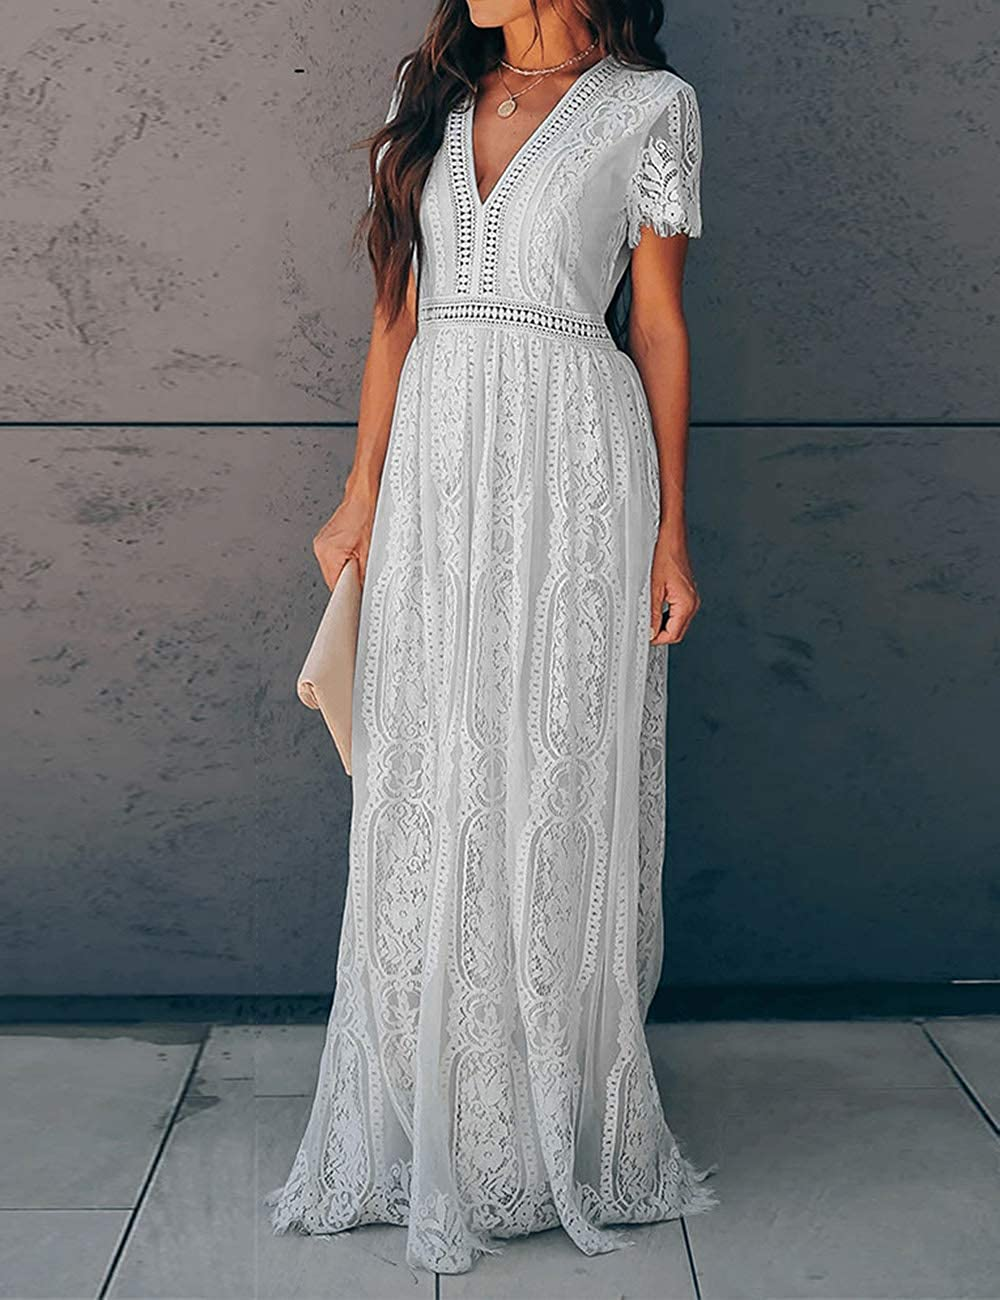 Cottagecore Dresses Aesthetic, Granny, Vintage Ecosunny Womens Deep V Neck Short Sleeve Floral Lace Bridesmaid Maxi Dress Party Gown $44.99 AT vintagedancer.com